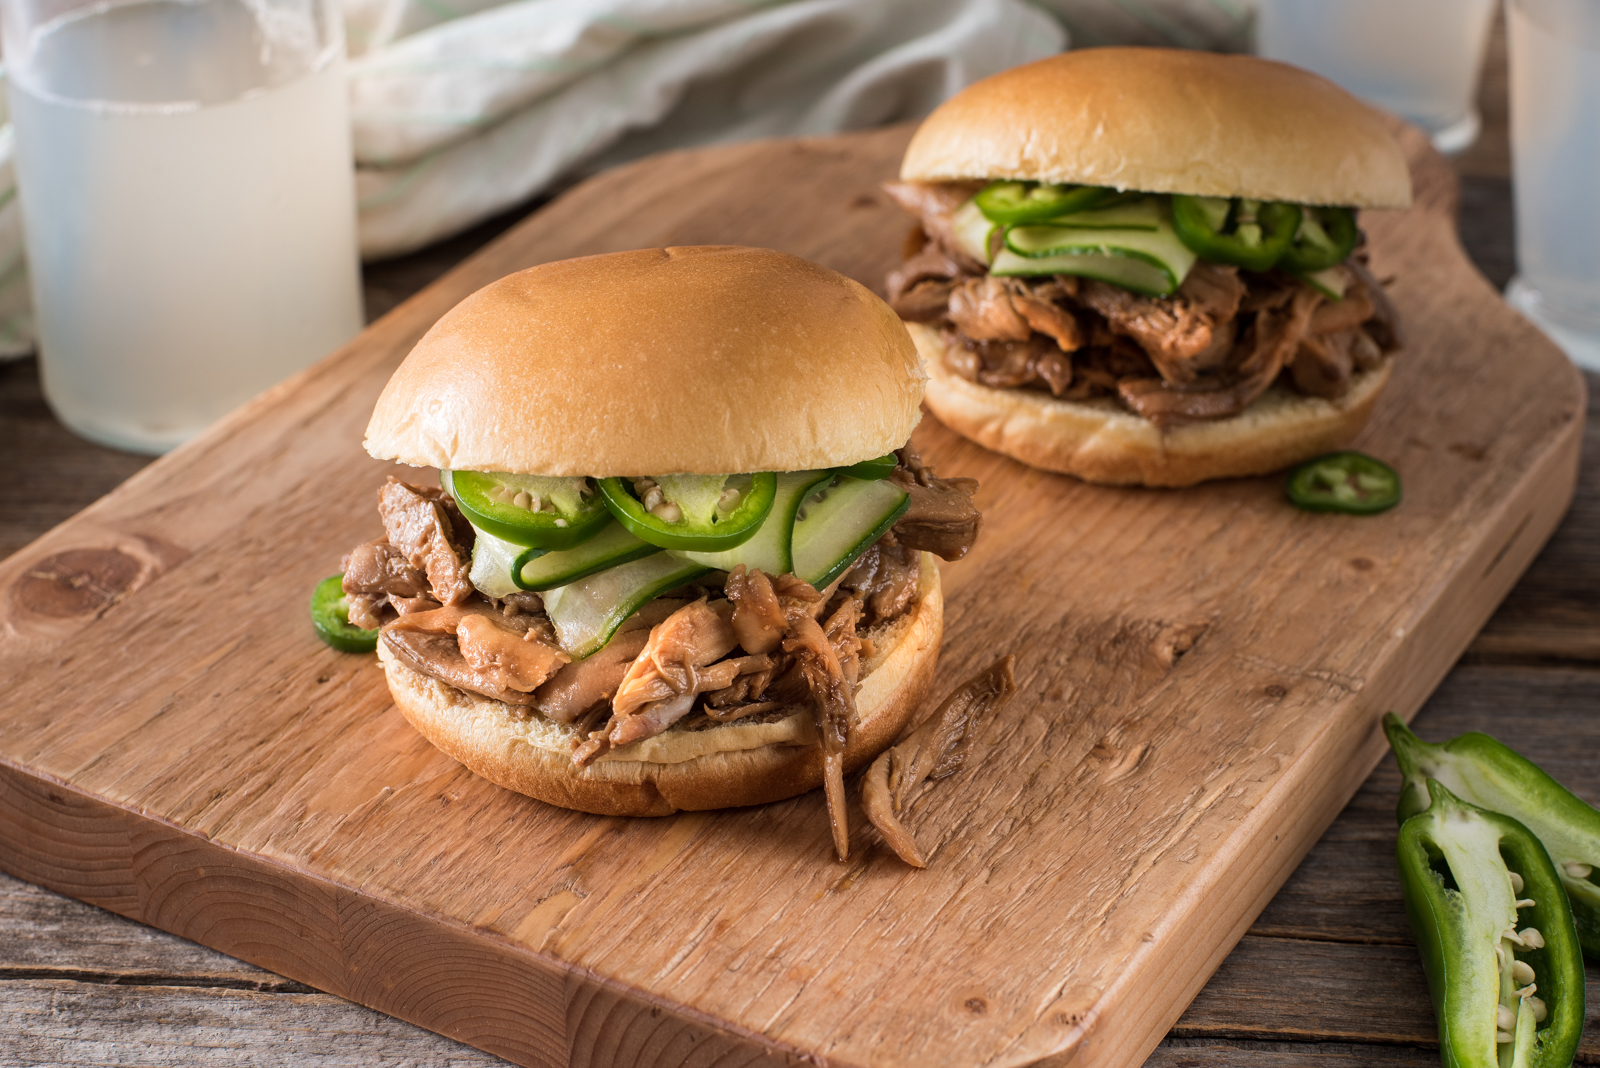 Prepared in the slow cooker, this Asian-inspired pulled chicken sandwich makes for an easy lunch or dinner that will please any hungry crowd.